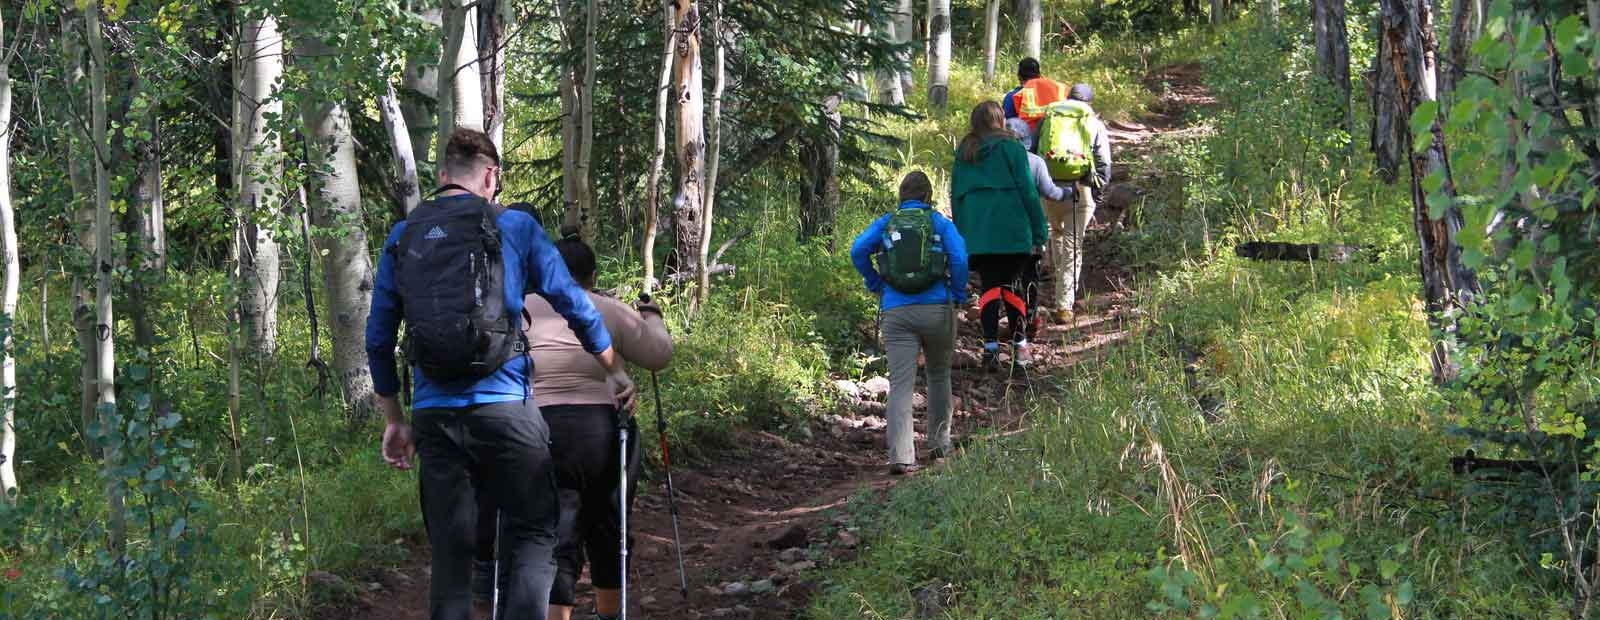 Adaptive Sports Participants Climbing a Mountain